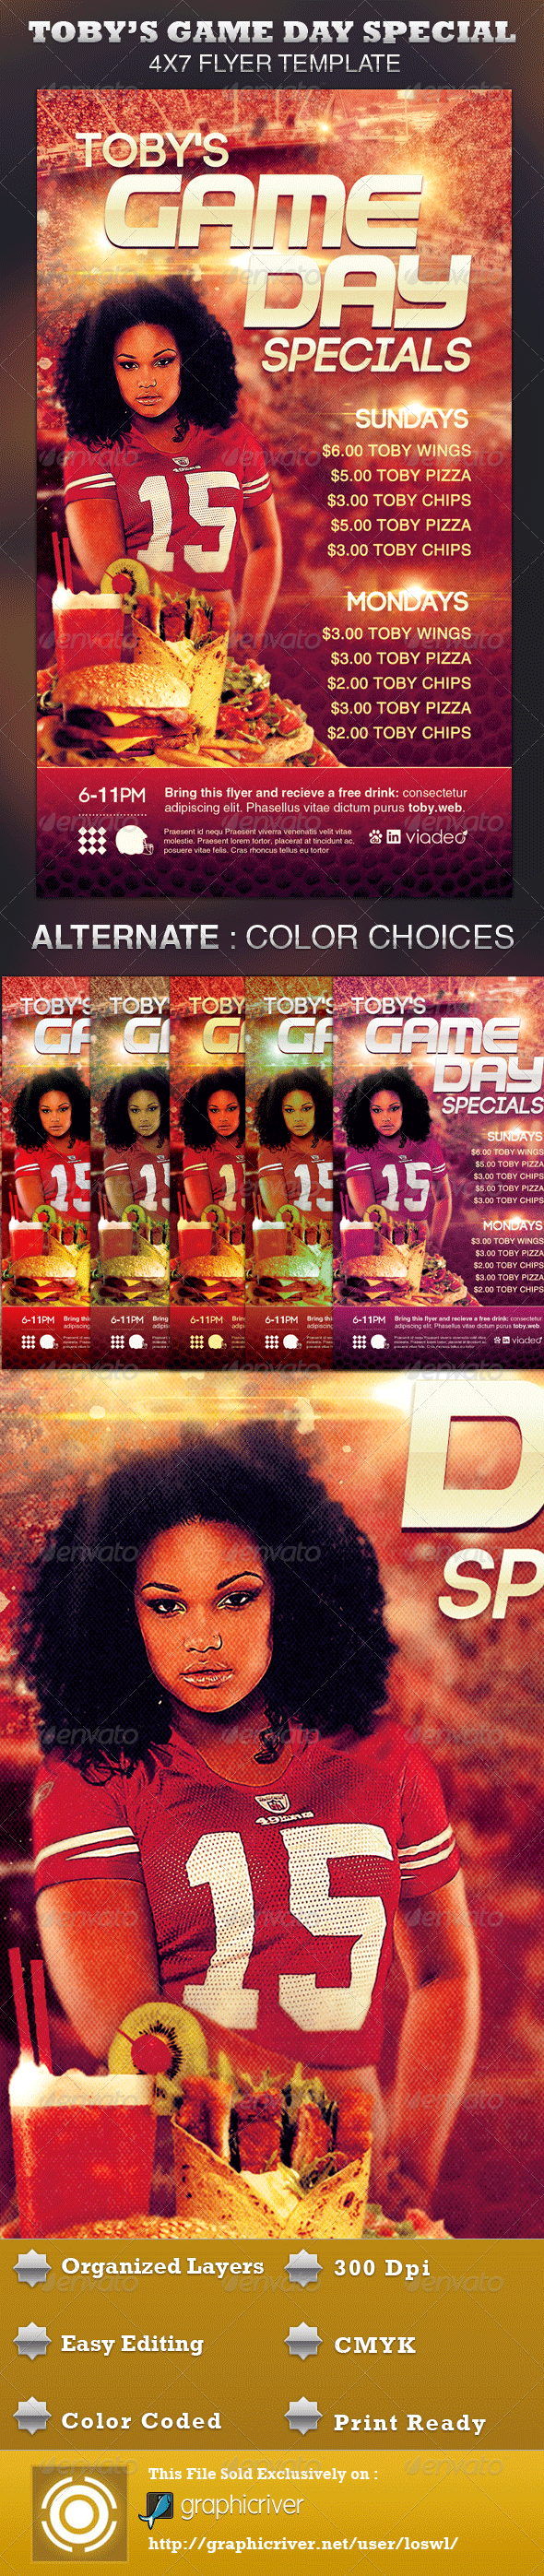 Toby's Game Day Specials Flyer Template - Sports Events